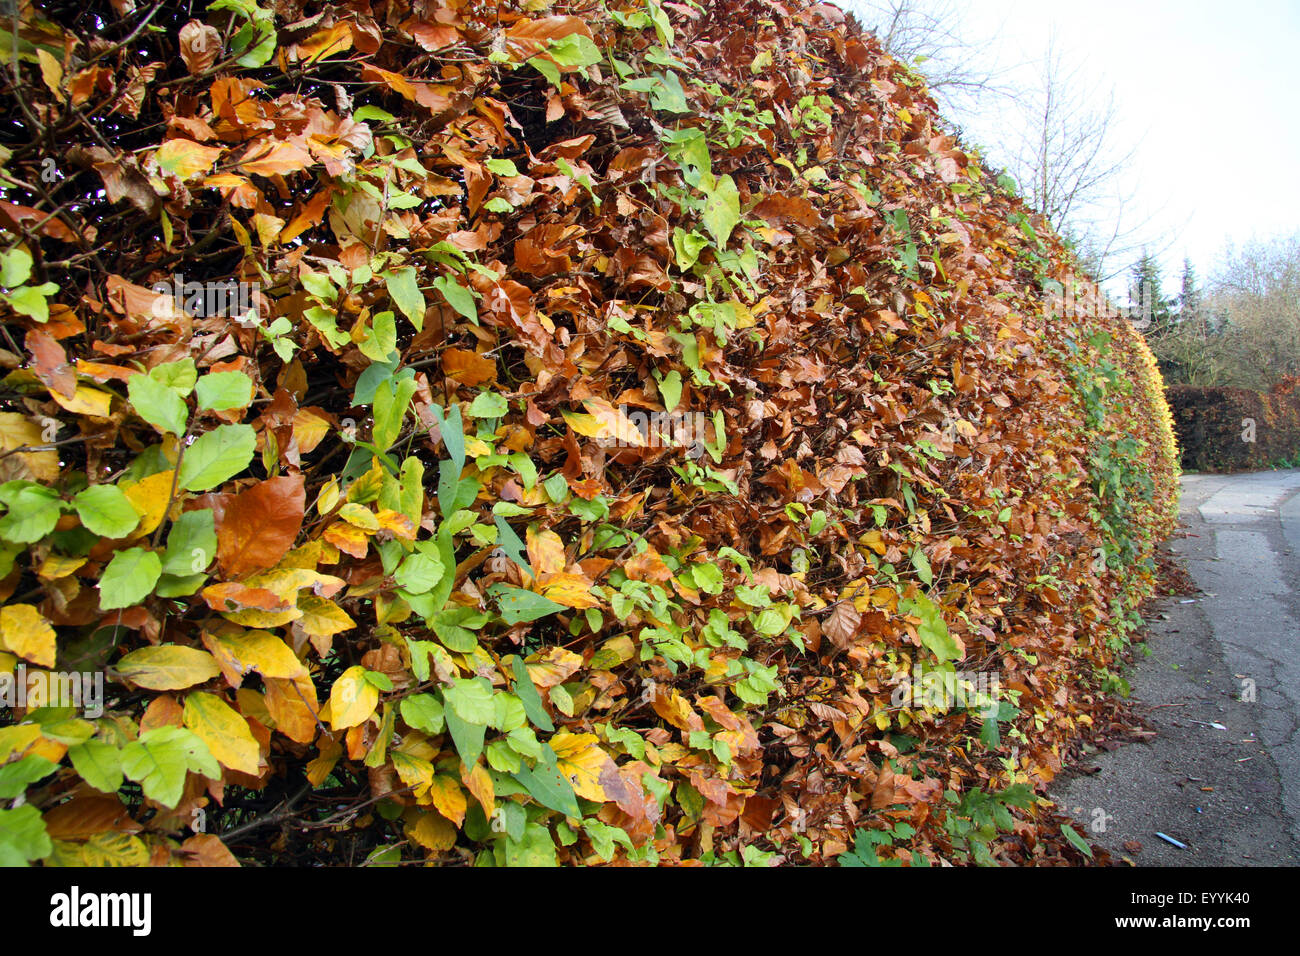 common beech (Fagus sylvatica), autumnal beech hedge as encircling to the street, Germany, North Rhine-Westphalia Stock Photo